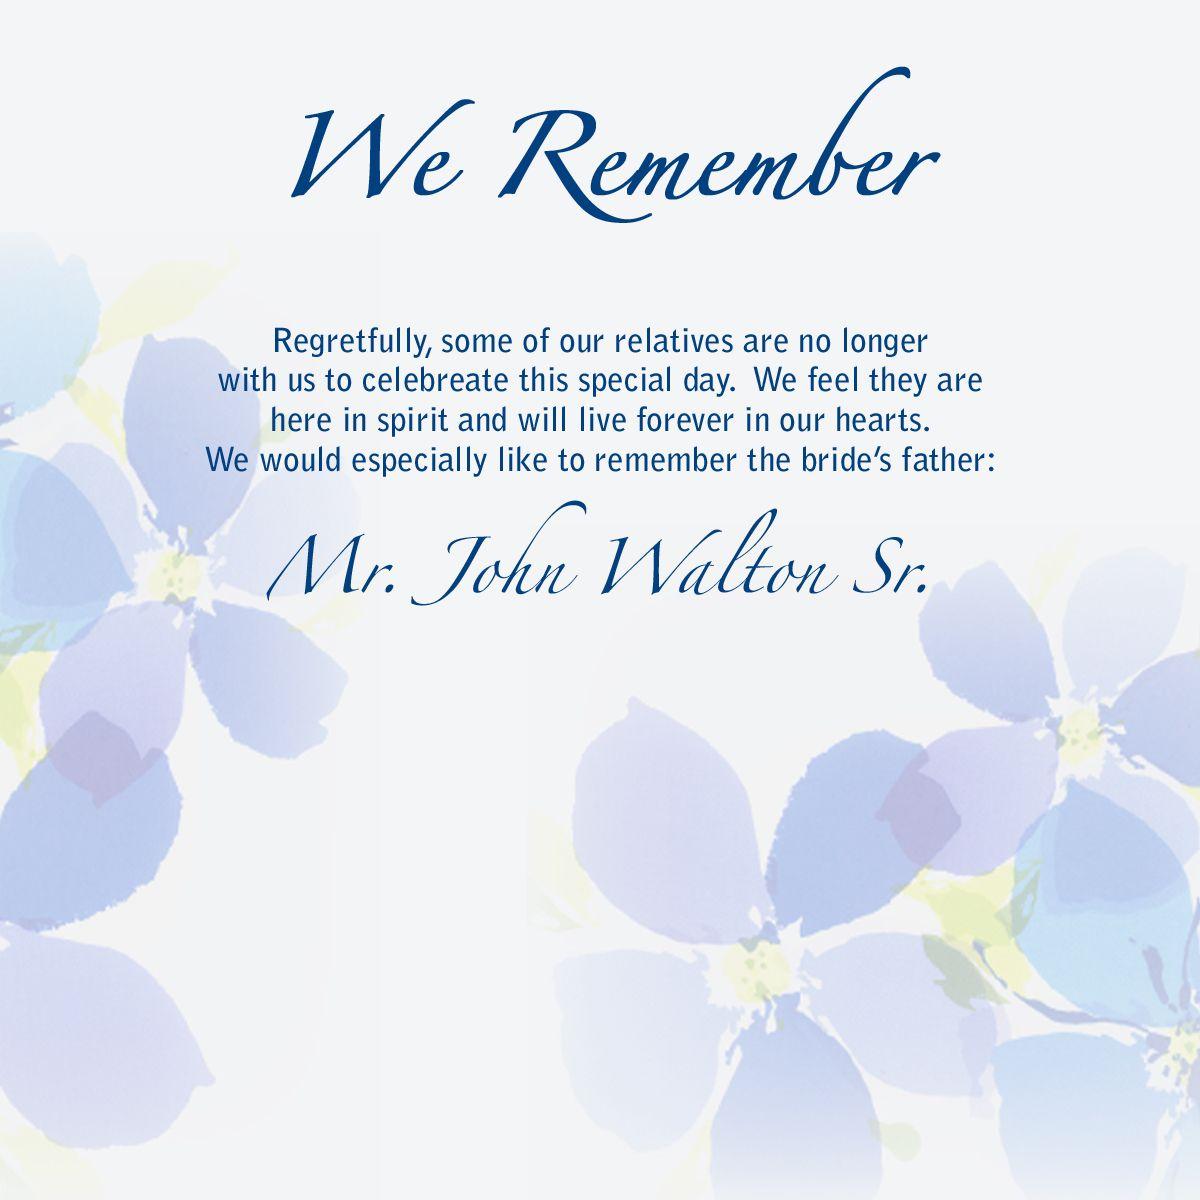 Remembering Loved Ones Quotes Sayings About Remembering Loved Ones  How To Memorialize Loved